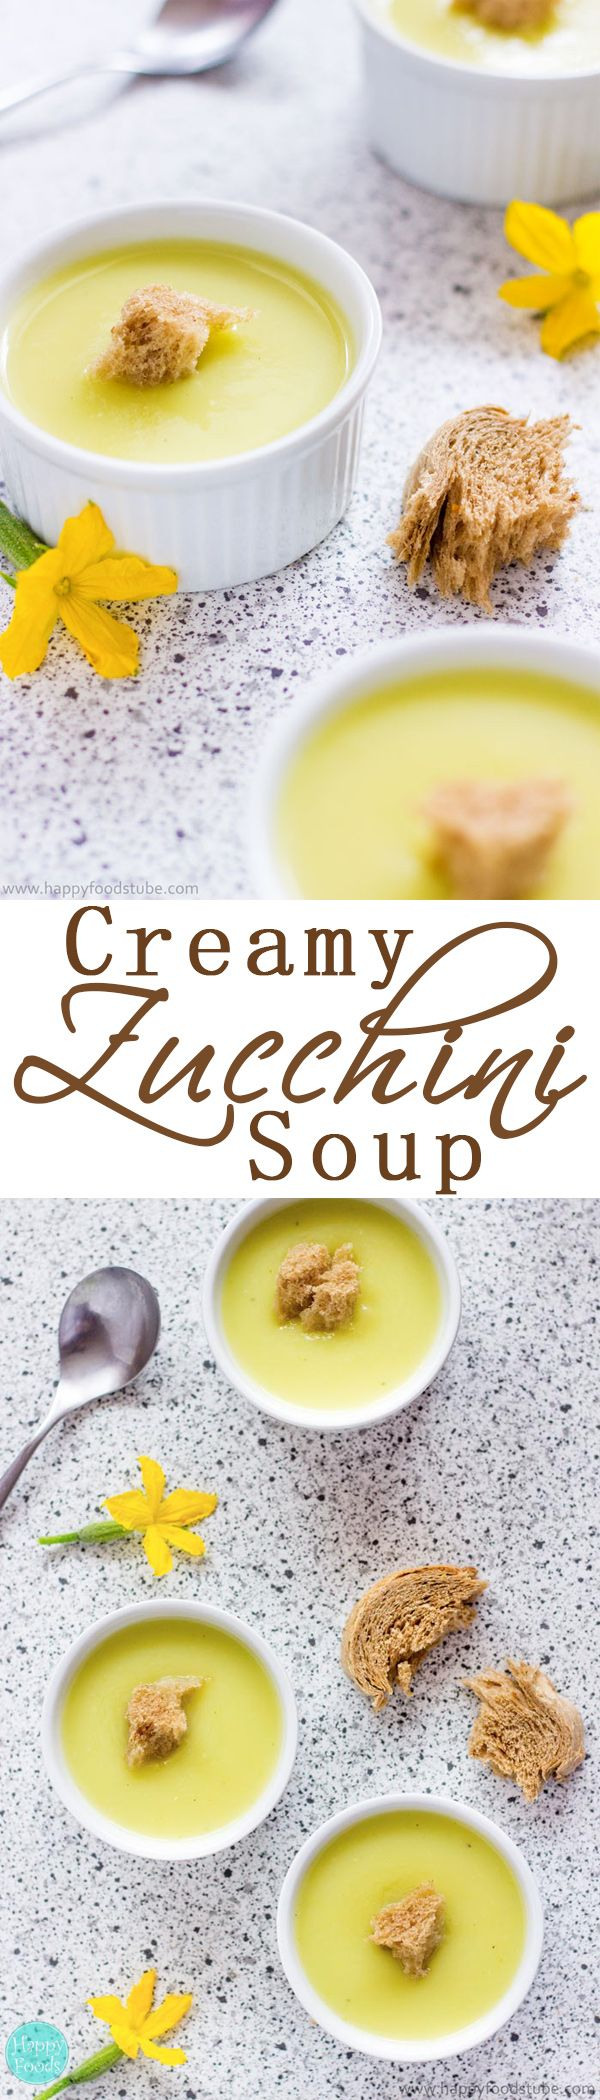 ... --Soups and Stews on Pinterest | Recetas, Soups and Soup recipes